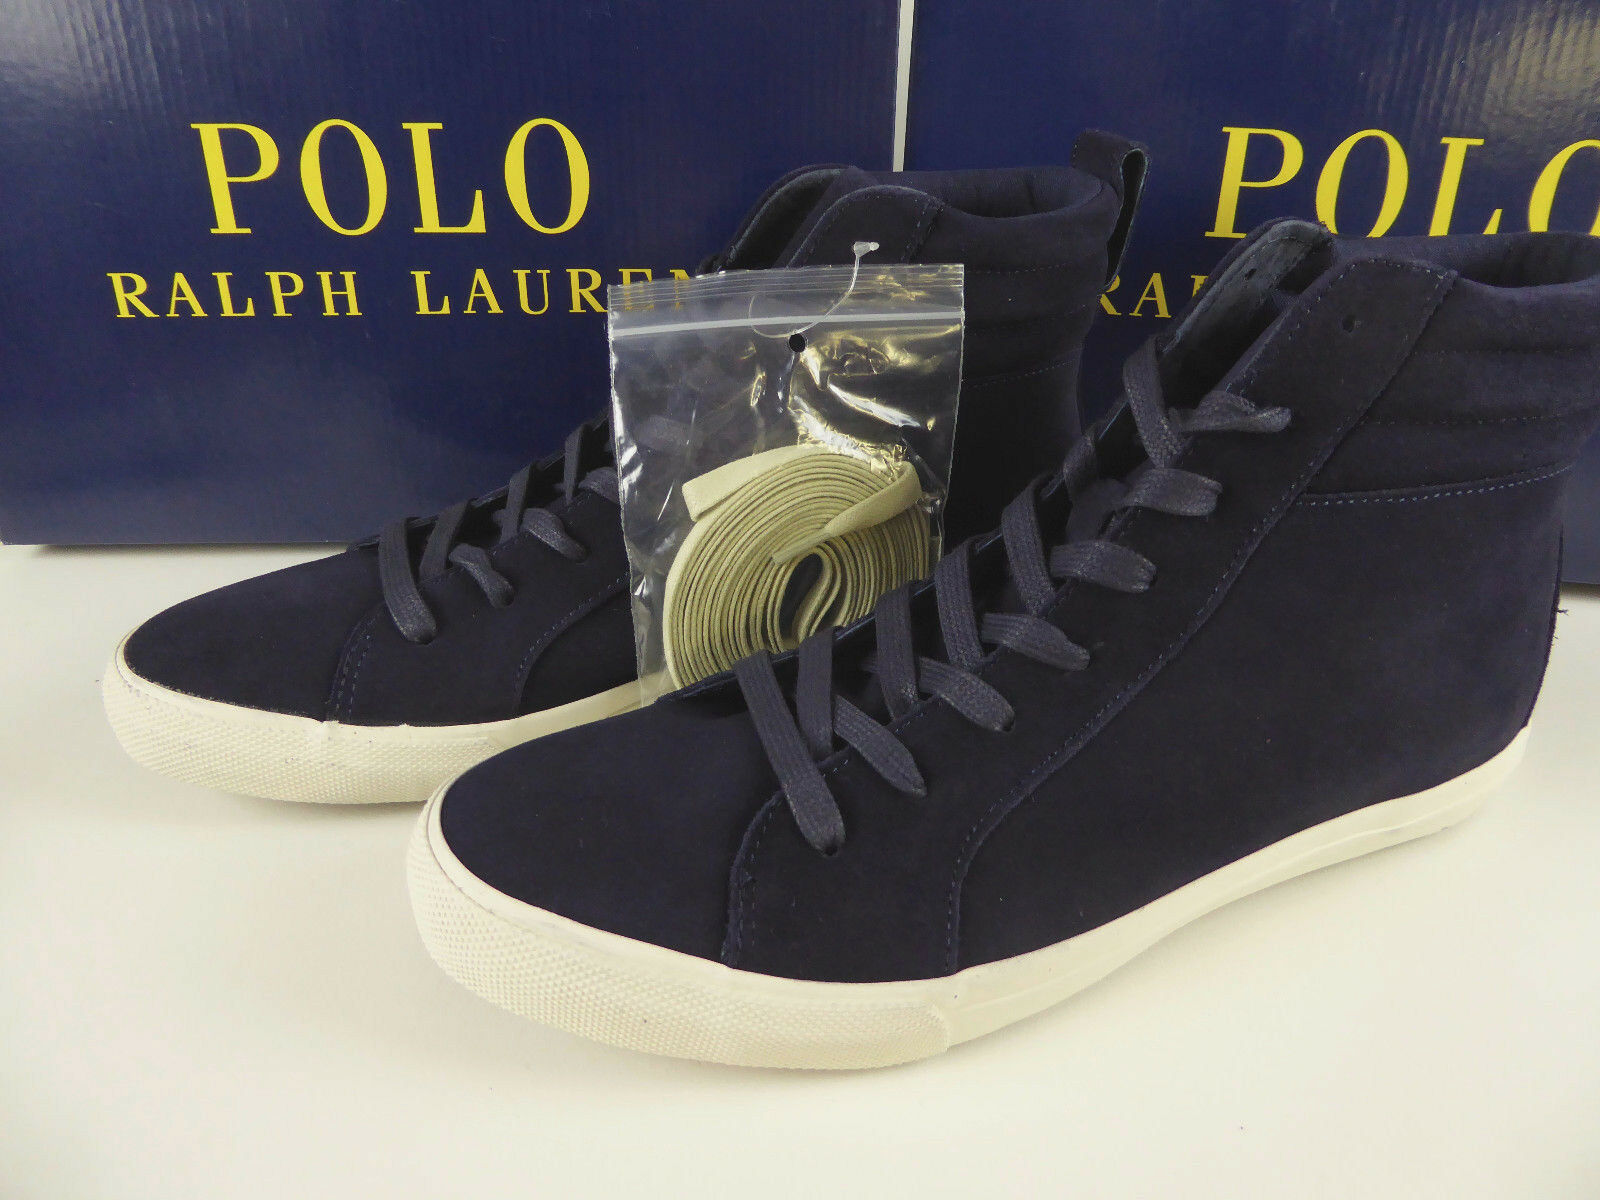 Polo Ralph Lauren Gaven Suede Leather Leather Leather Turnschuhe schuhe NIB  125 Hi-Tops Polo Badge 71436b